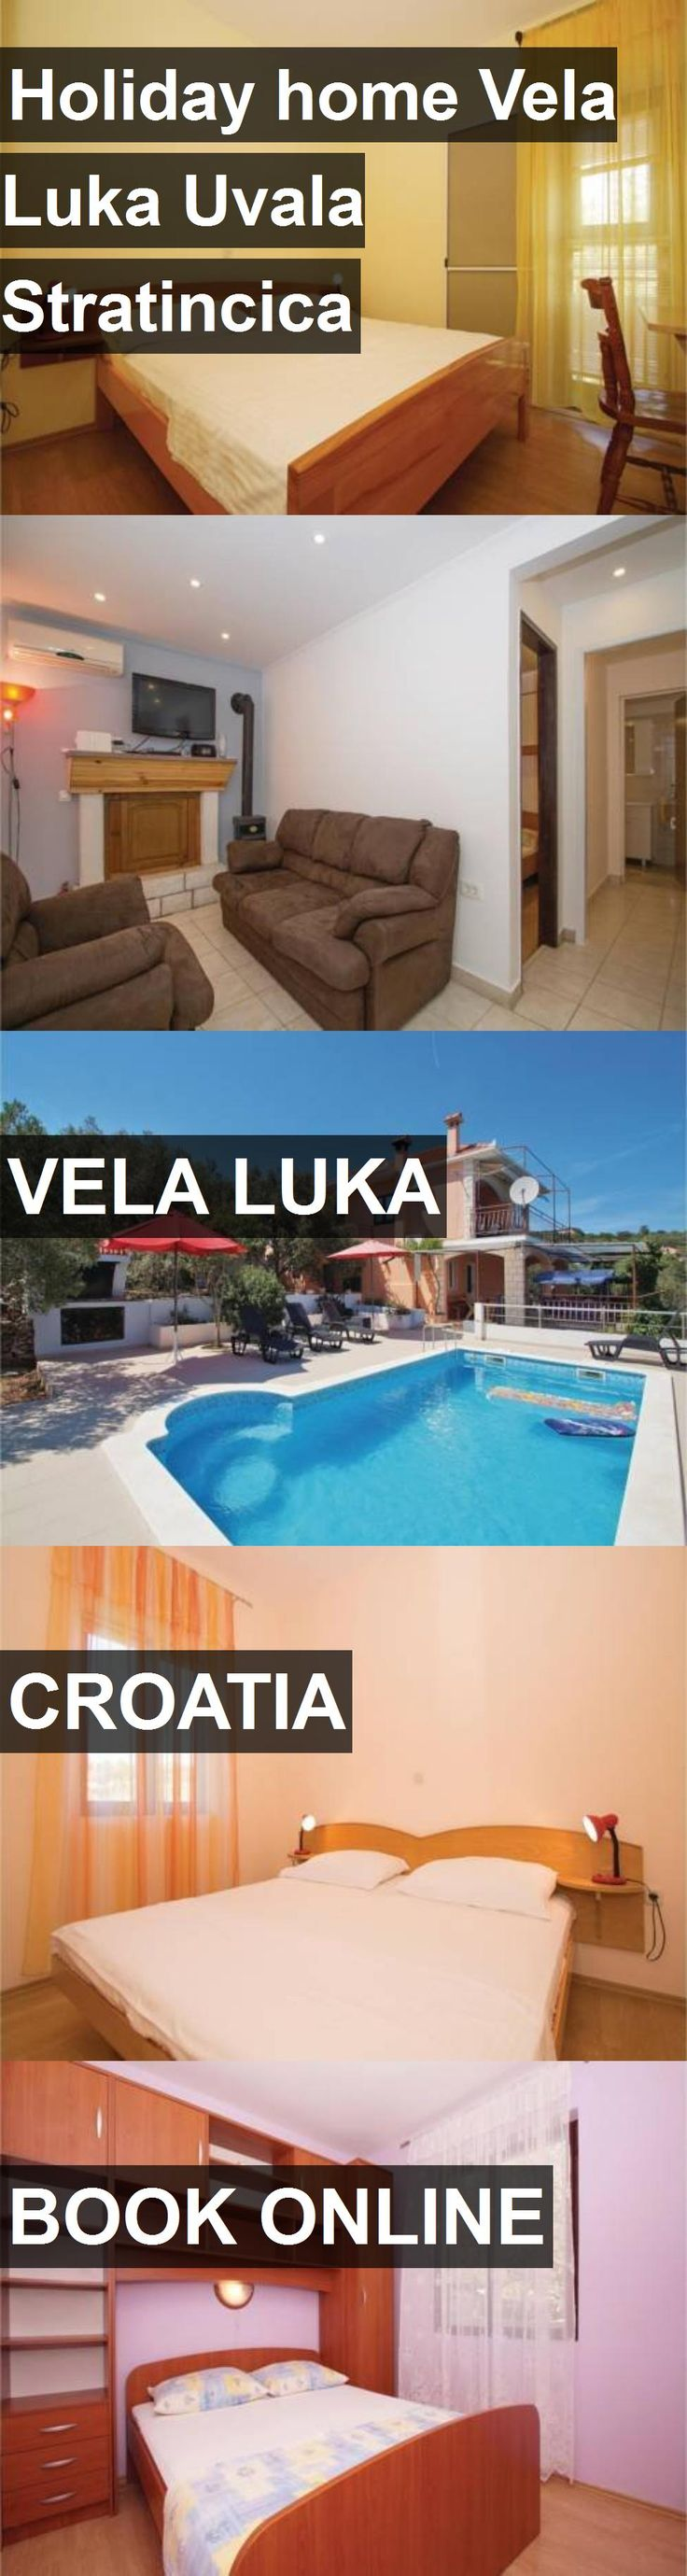 Hotel Holiday home Vela Luka Uvala Stratincica in Vela Luka, Croatia. For more information, photos, reviews and best prices please follow the link. #Croatia #VelaLuka #travel #vacation #hotel